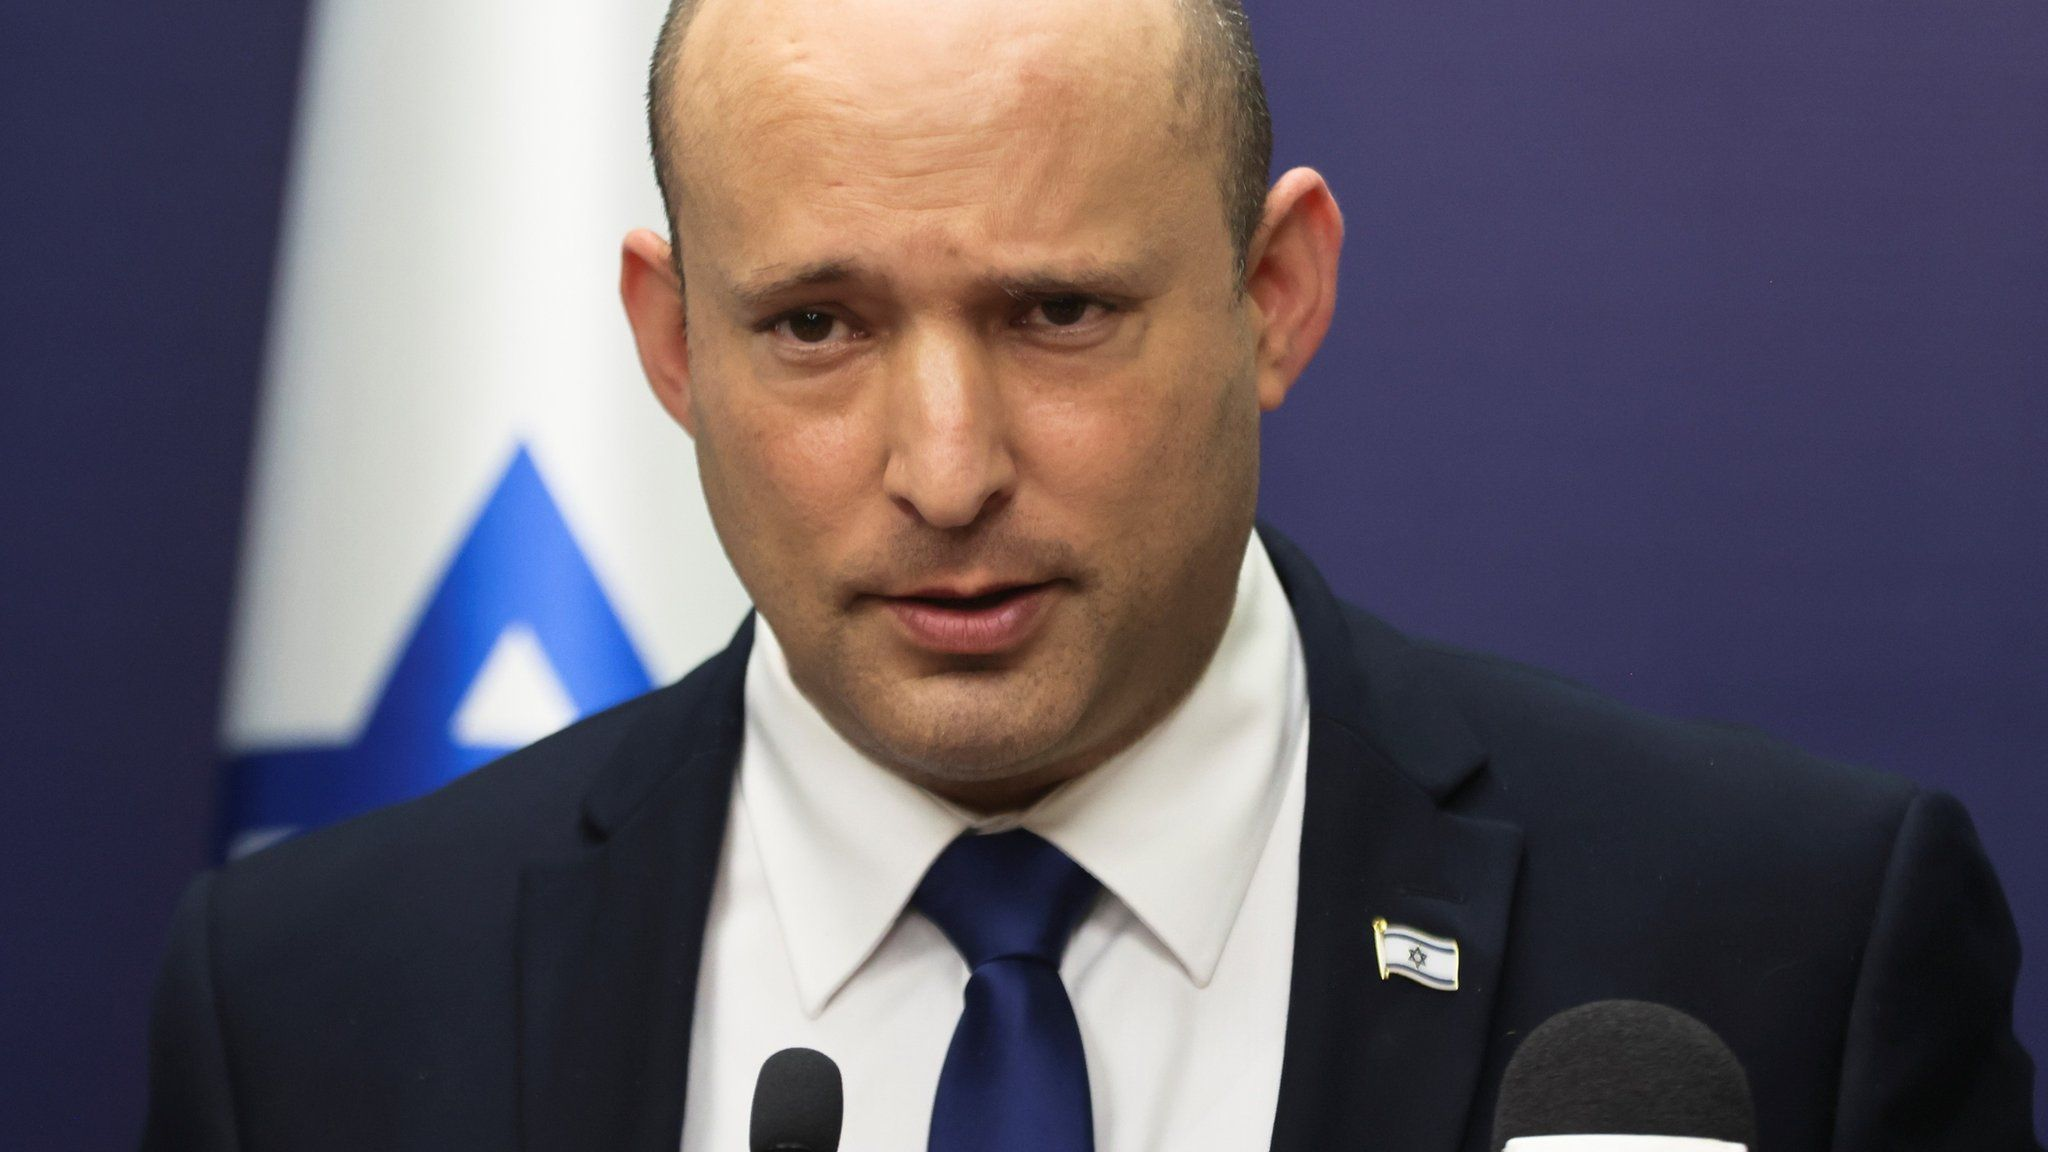 Naftali Bennett speaks during a meeting of his Yamina party in the Israeli parliament on 5 July 2021